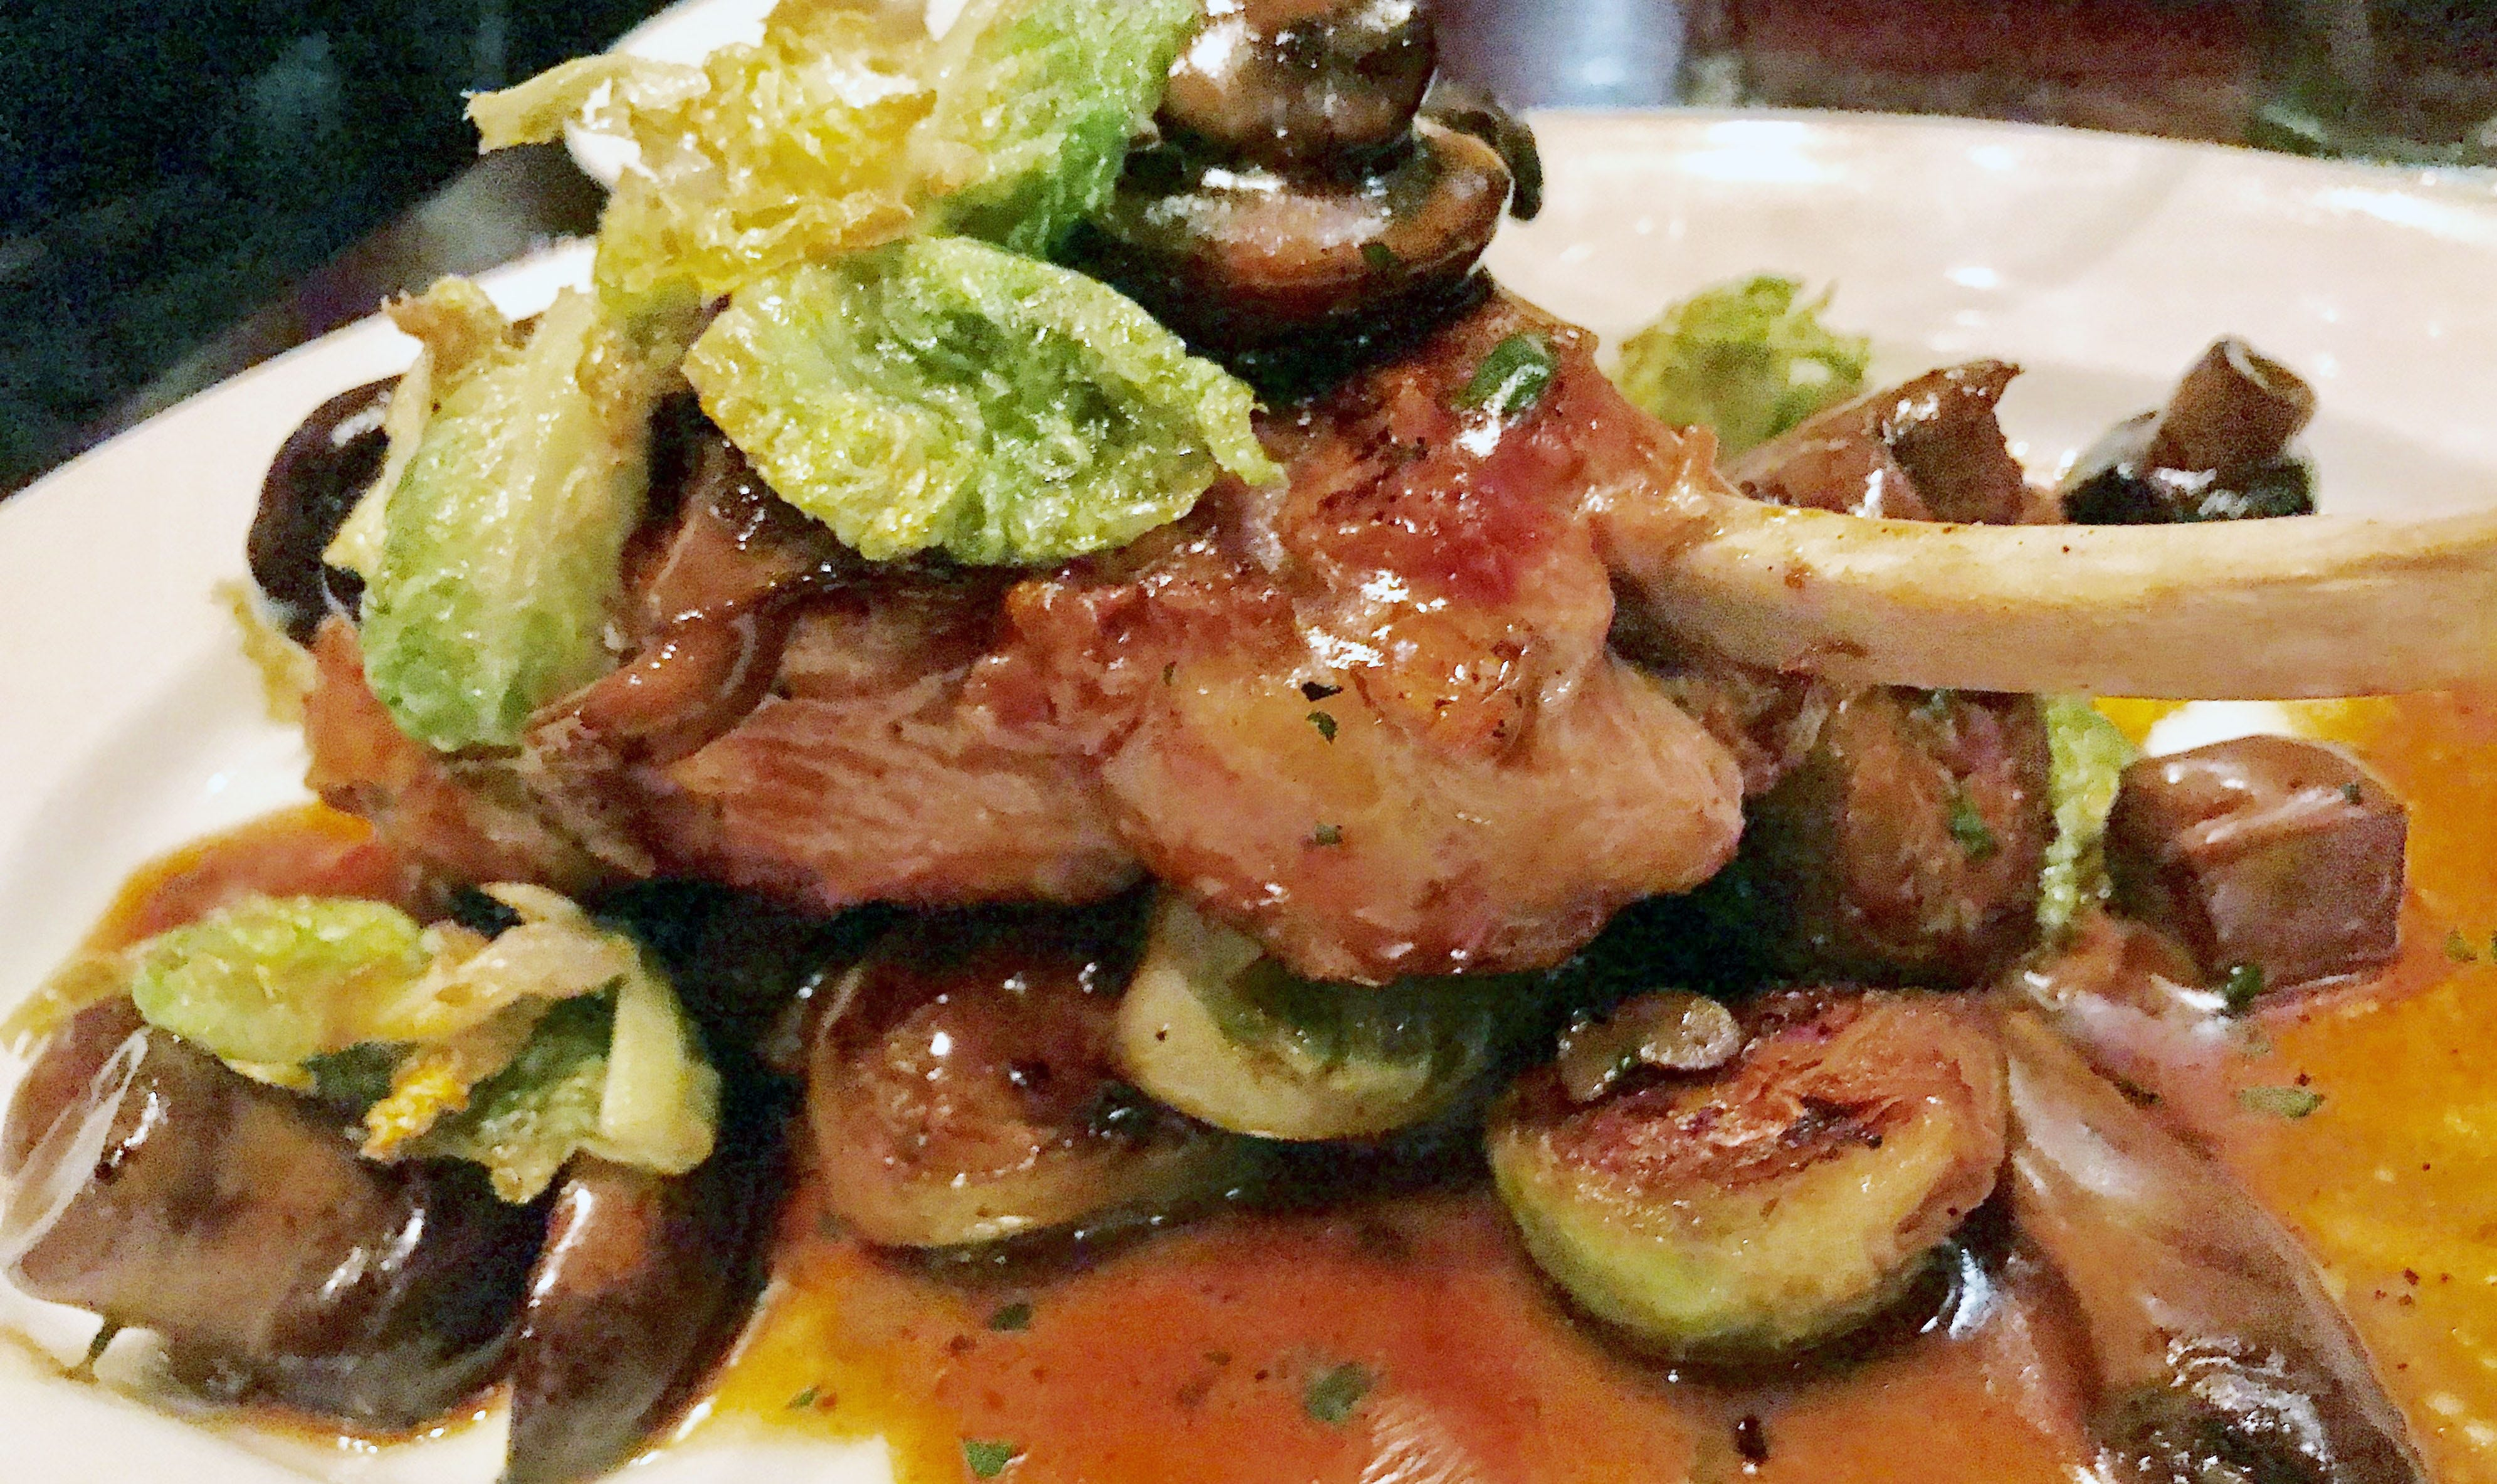 Besides steaks, Carnevor serves composed dishes like this bone-in veal chop with mushrooms and brussels sprouts.